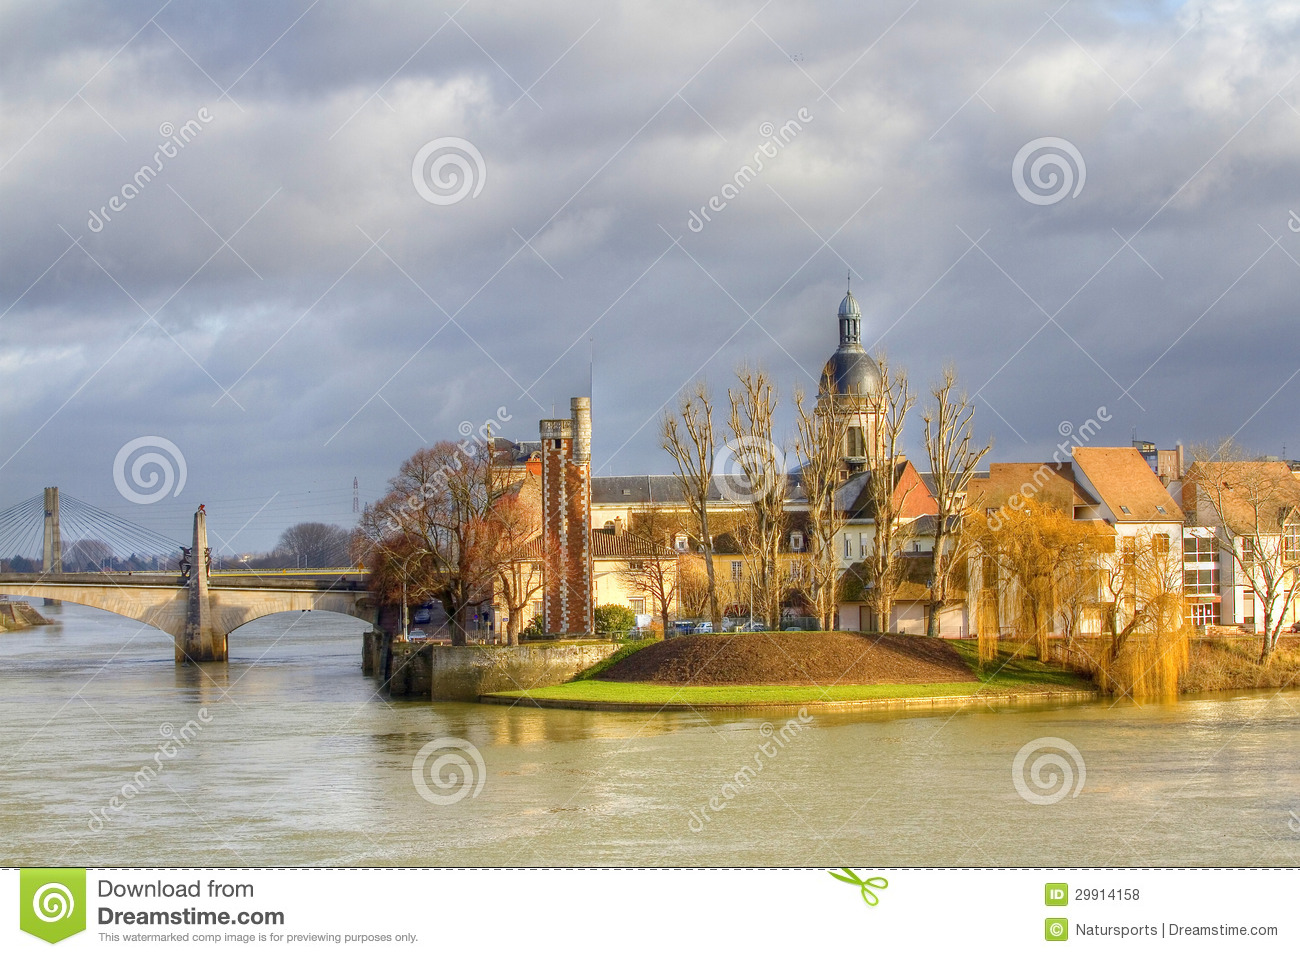 chalon sur saone stock photo image of bridge town. Black Bedroom Furniture Sets. Home Design Ideas